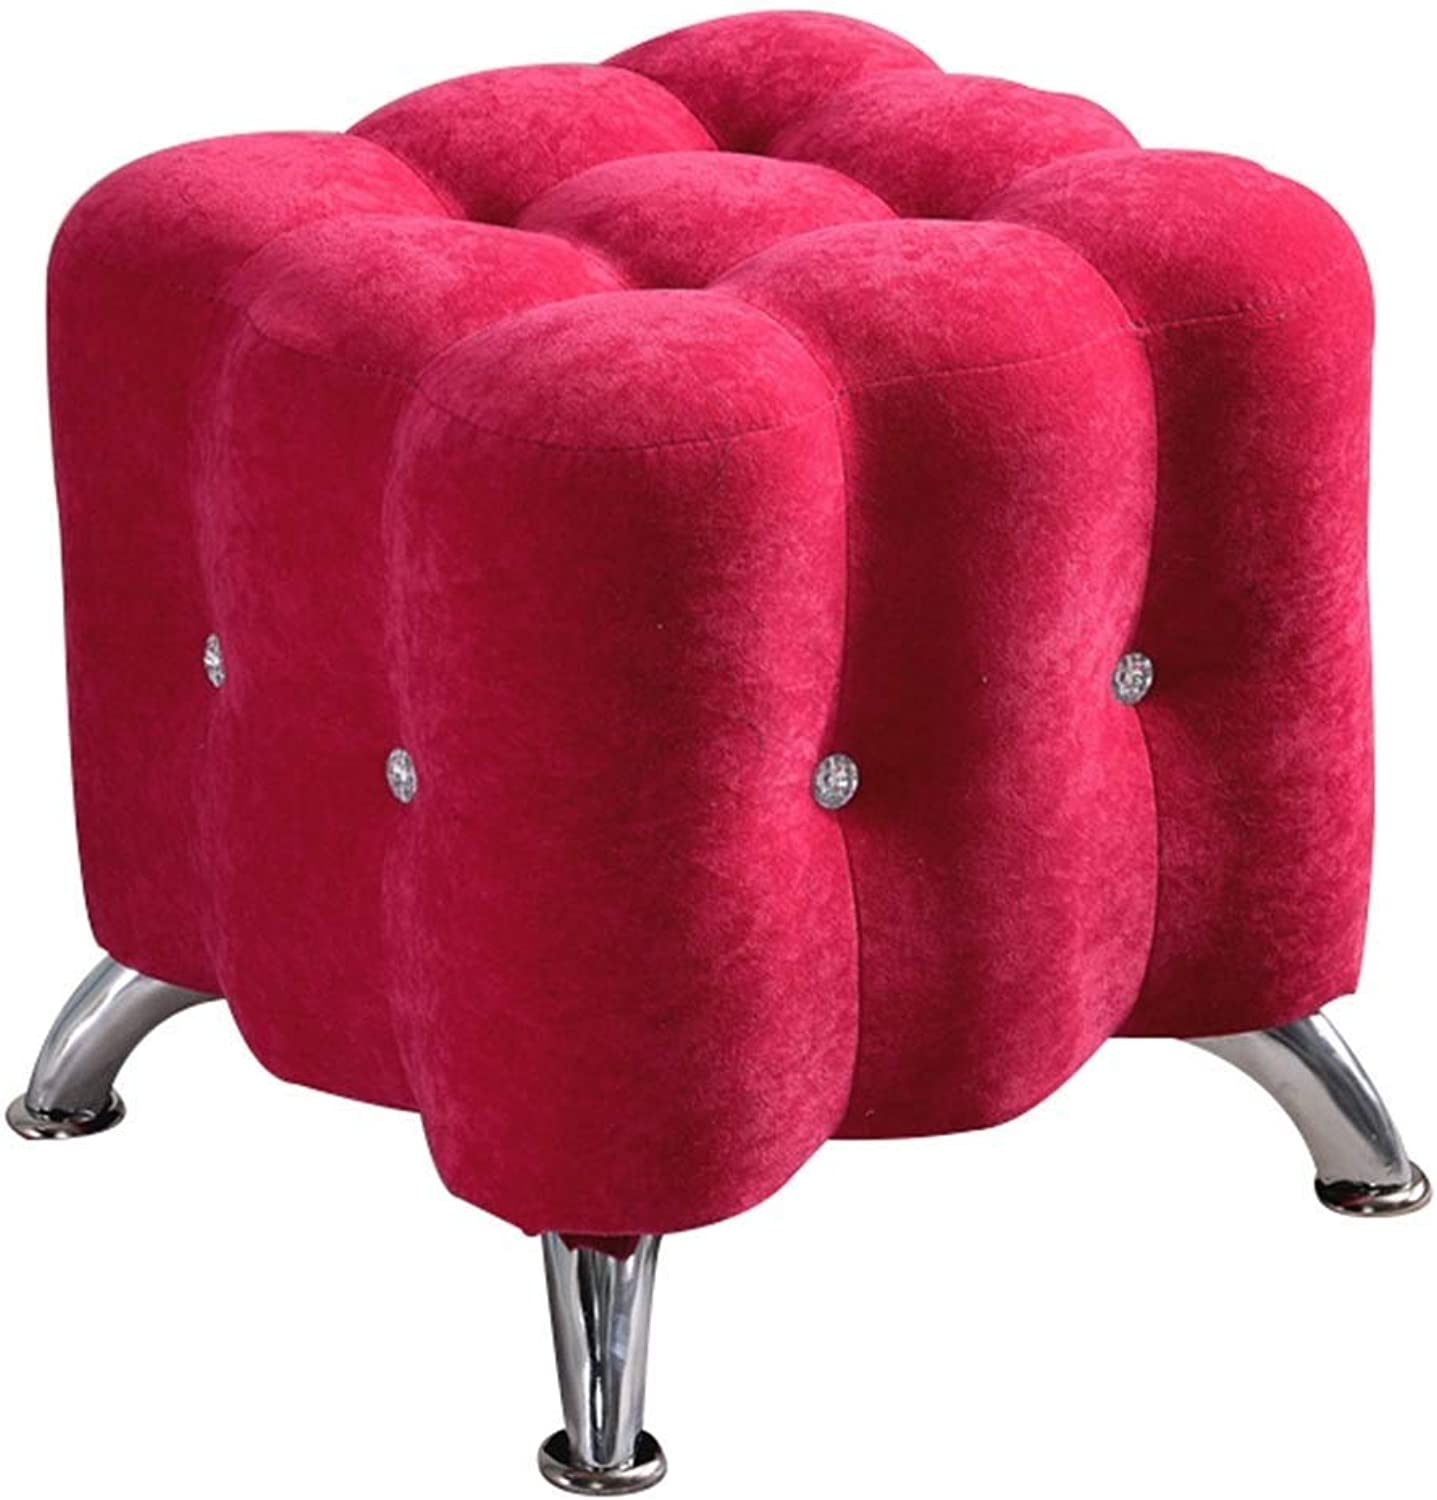 Footstool Cloth European Style Sofa Stool Storage Change shoes Bench Living Room, 5 colors GFMING (color   Red, Size   40x40x40cm)